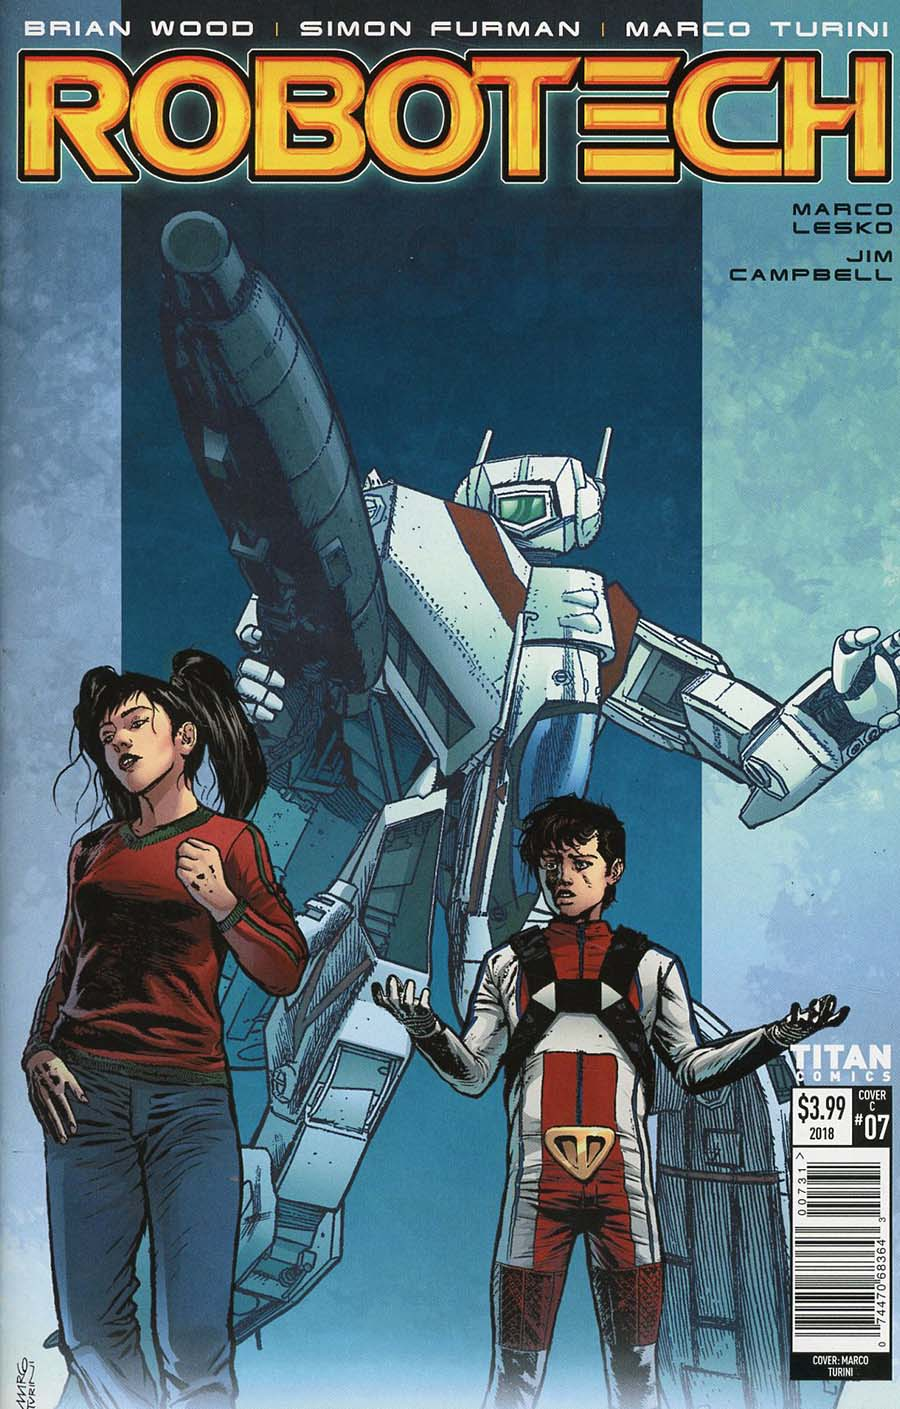 Robotech Vol 3 #7 Cover C Variant Marco Turini Cover